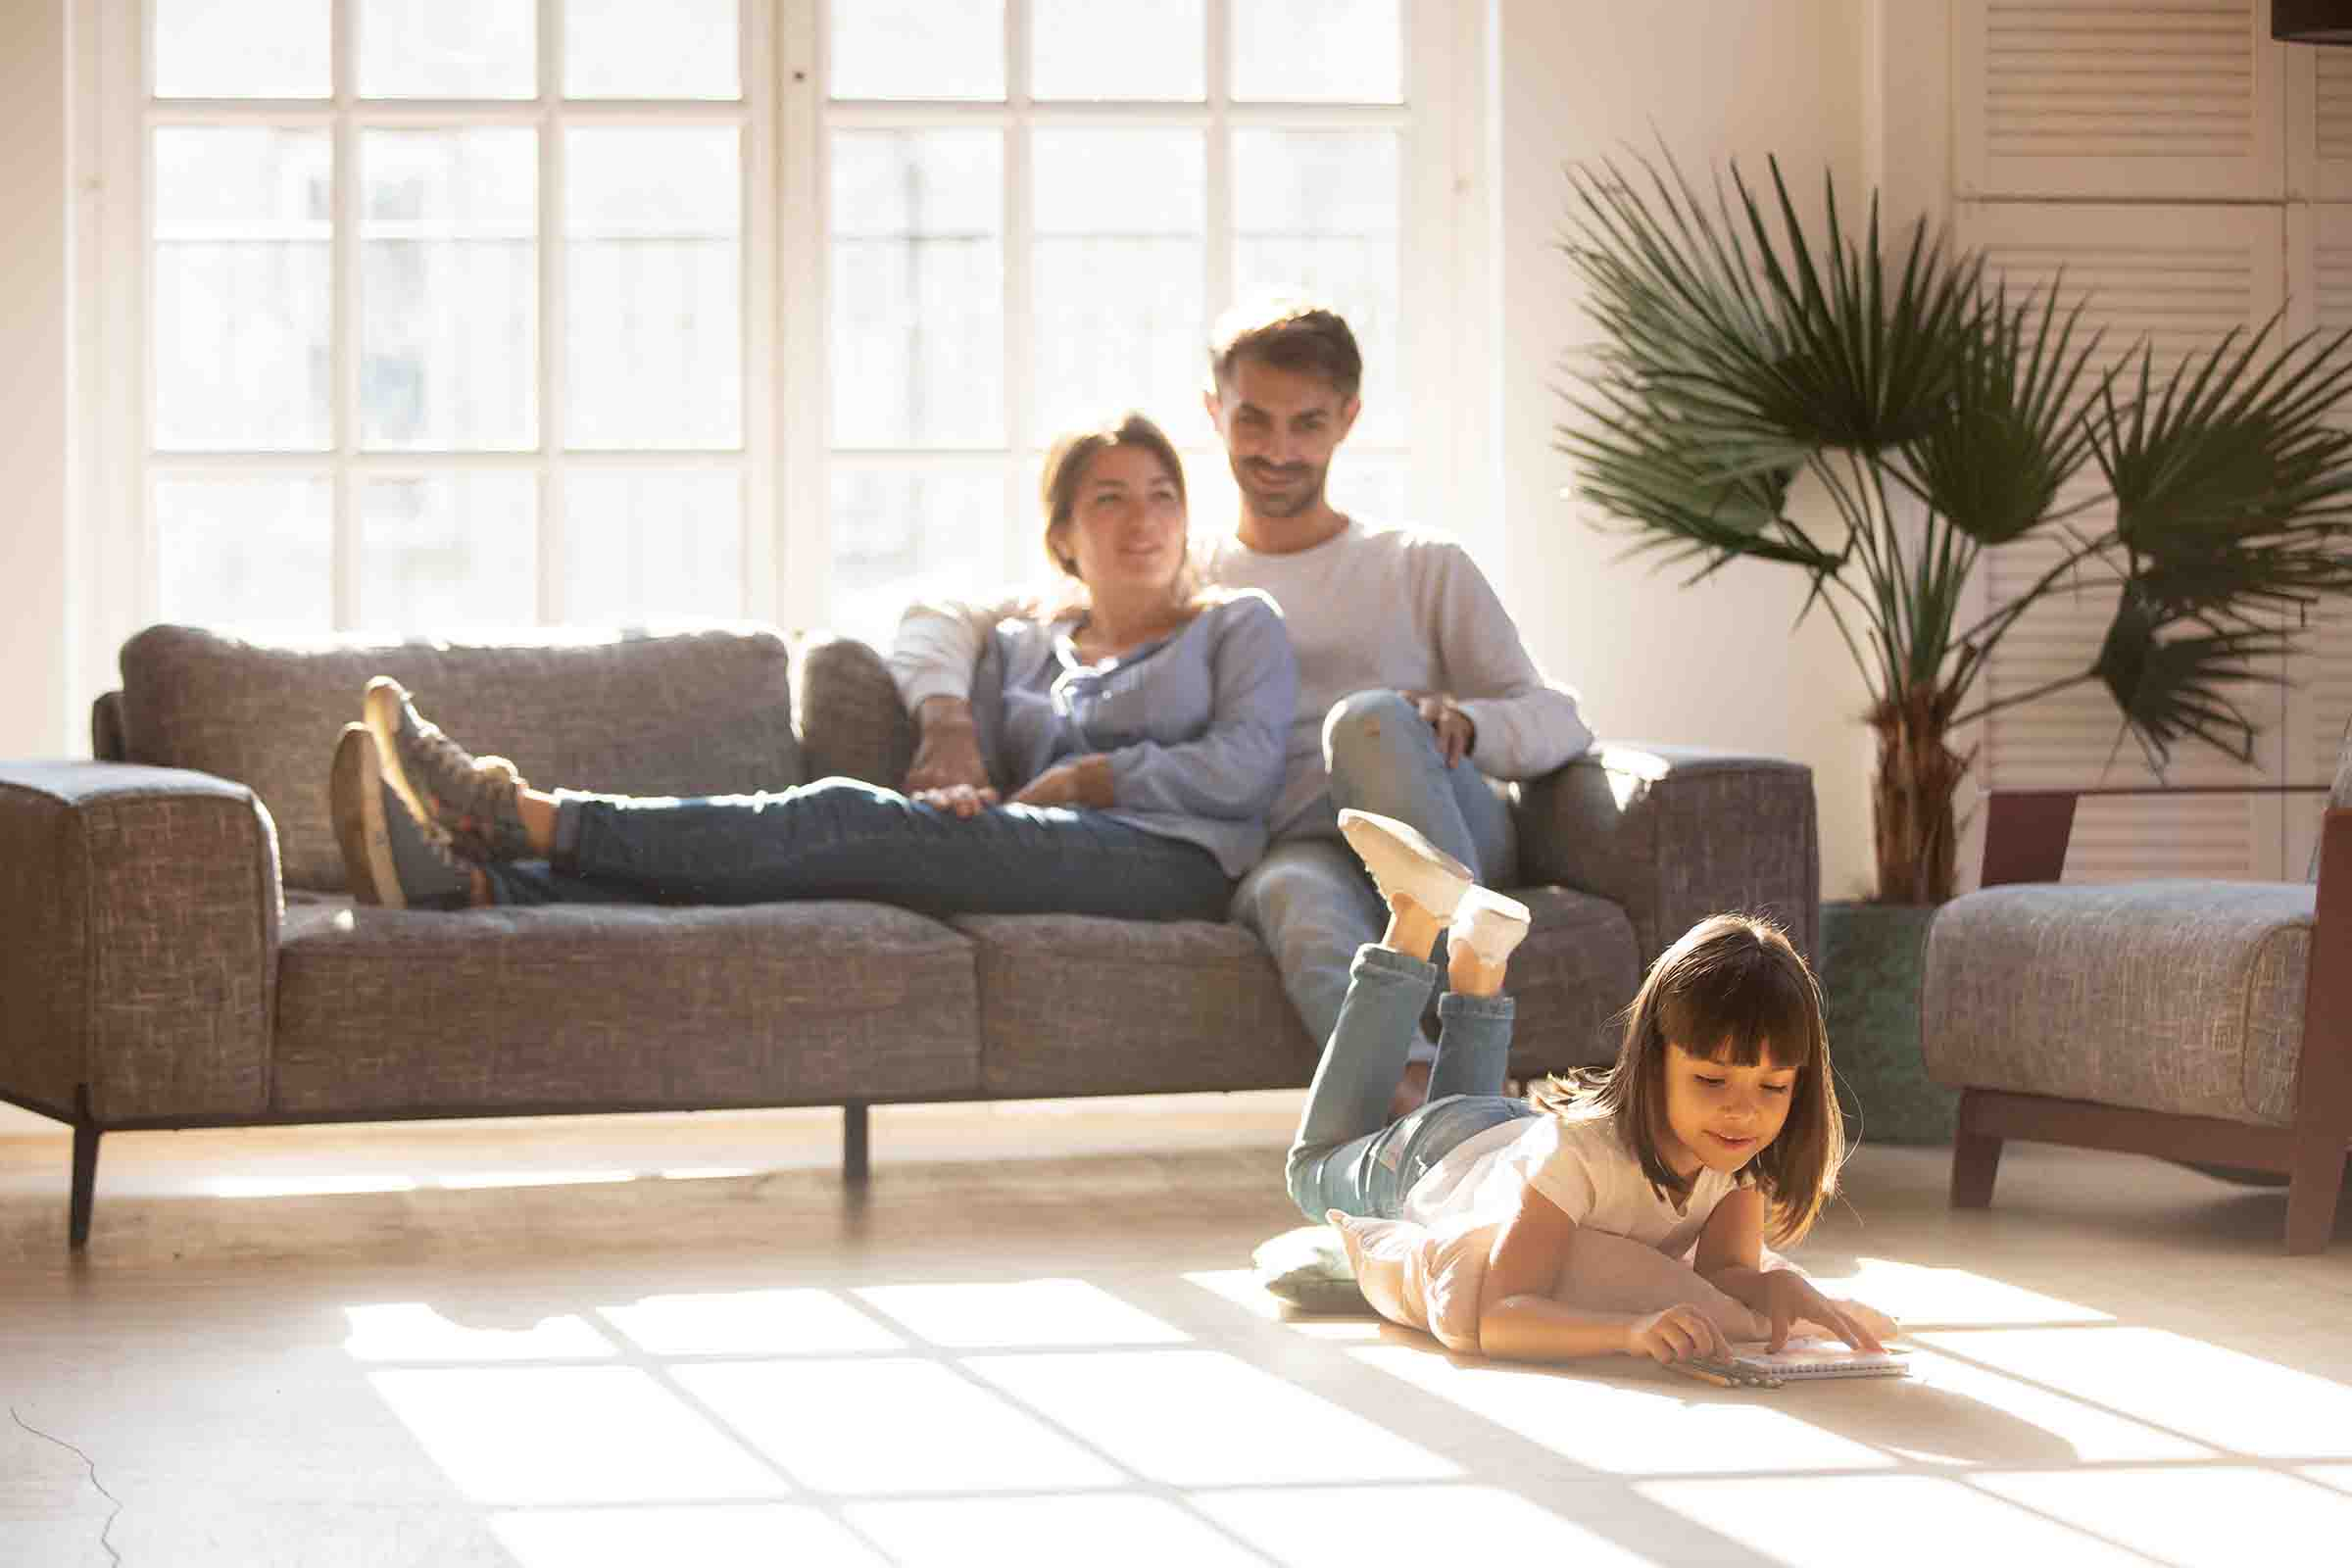 Family enjoying warmth on couch